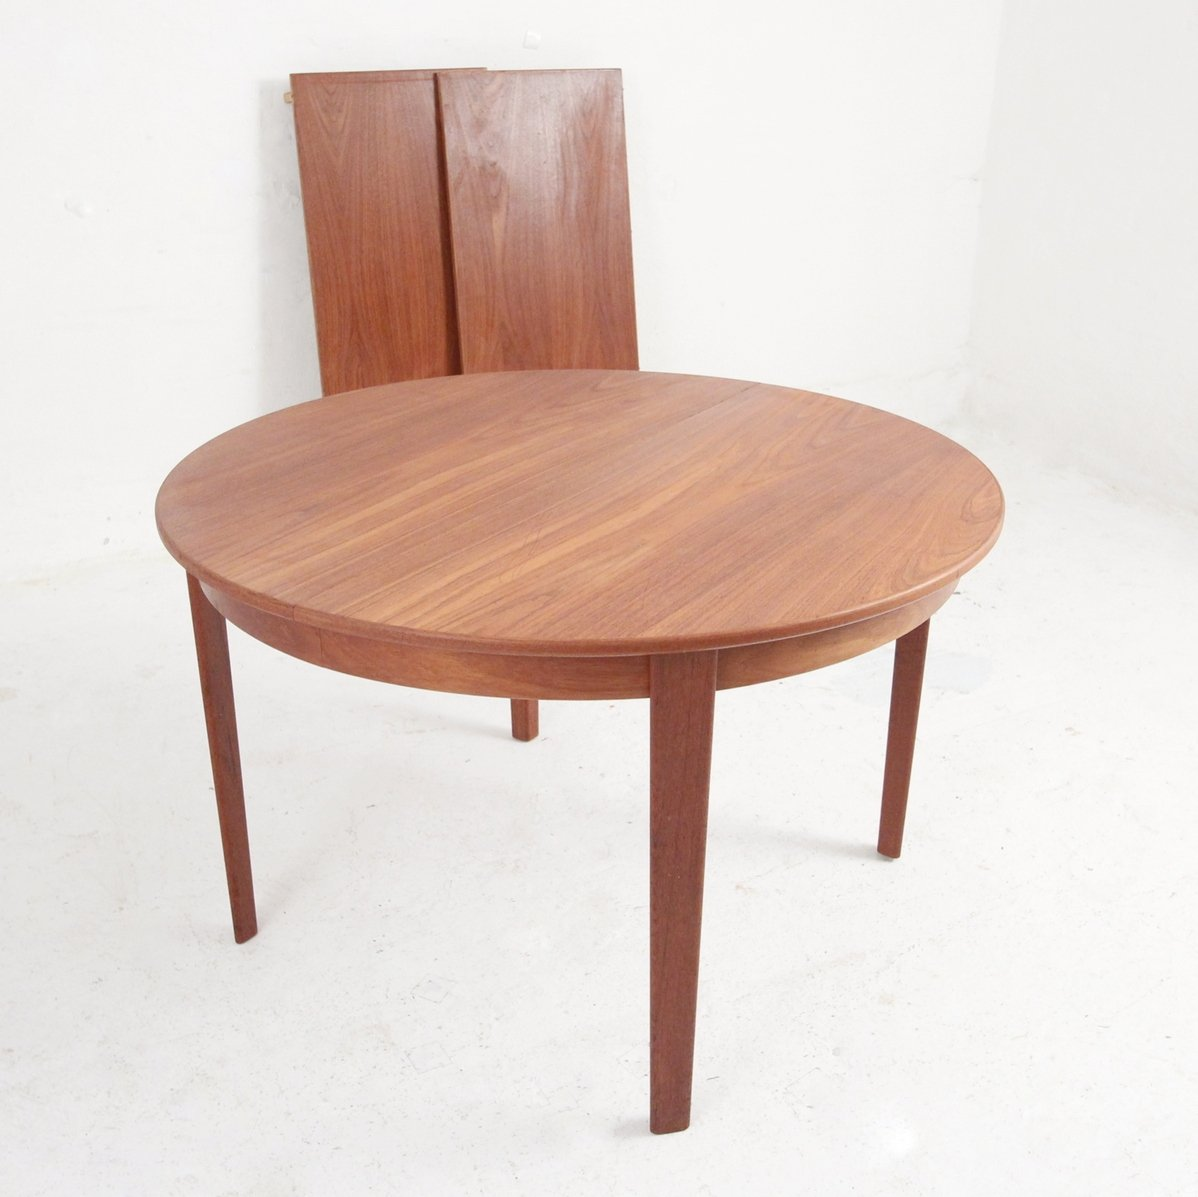 Image of: Danish Midcentury Round Dining Table In Teak With Extensions 95294